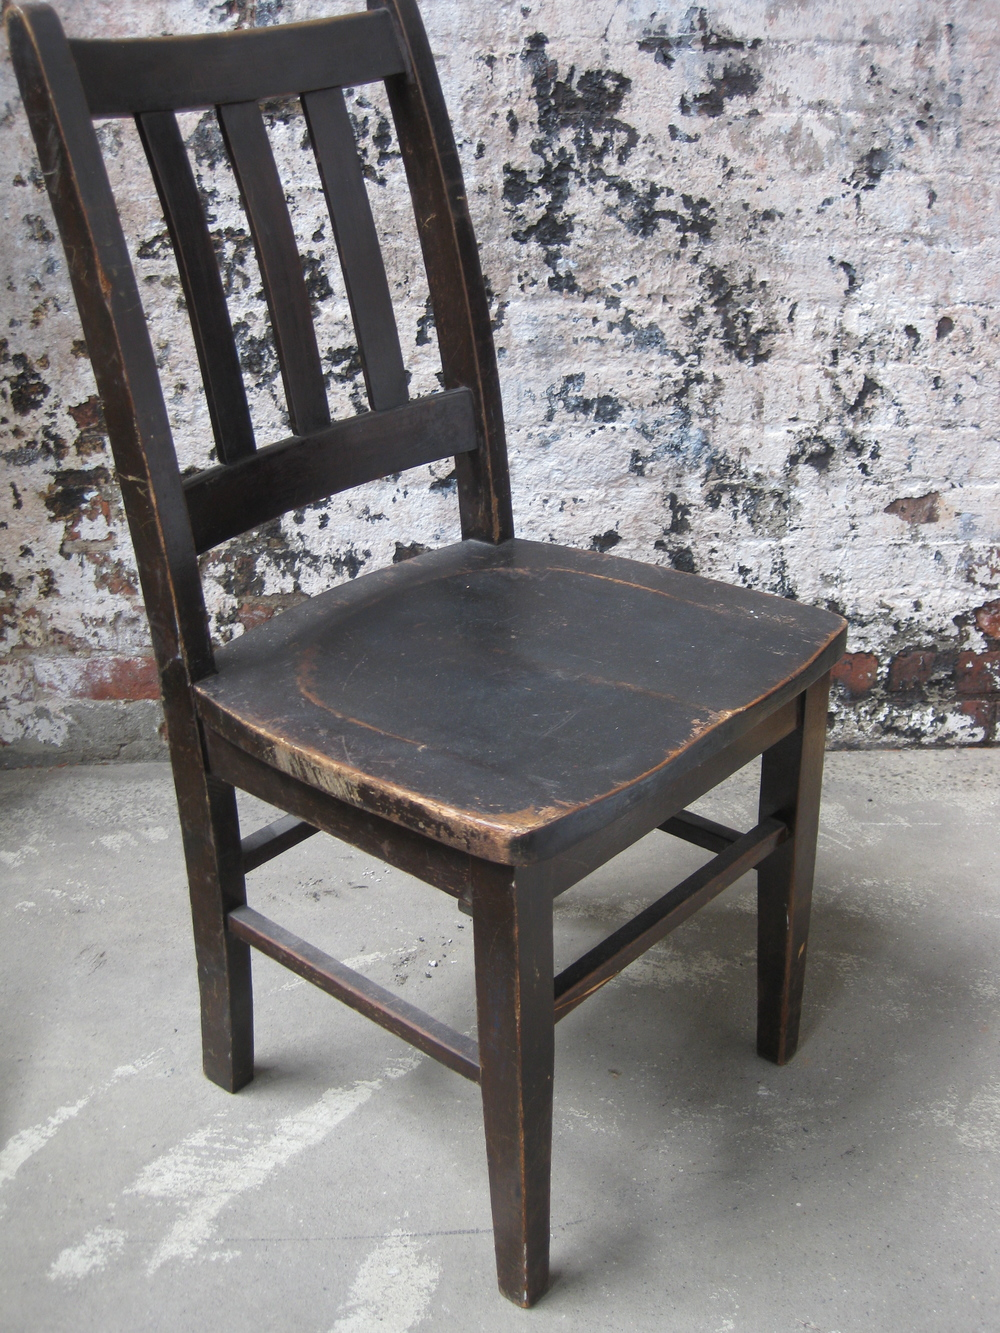 Old Wood Chair $48